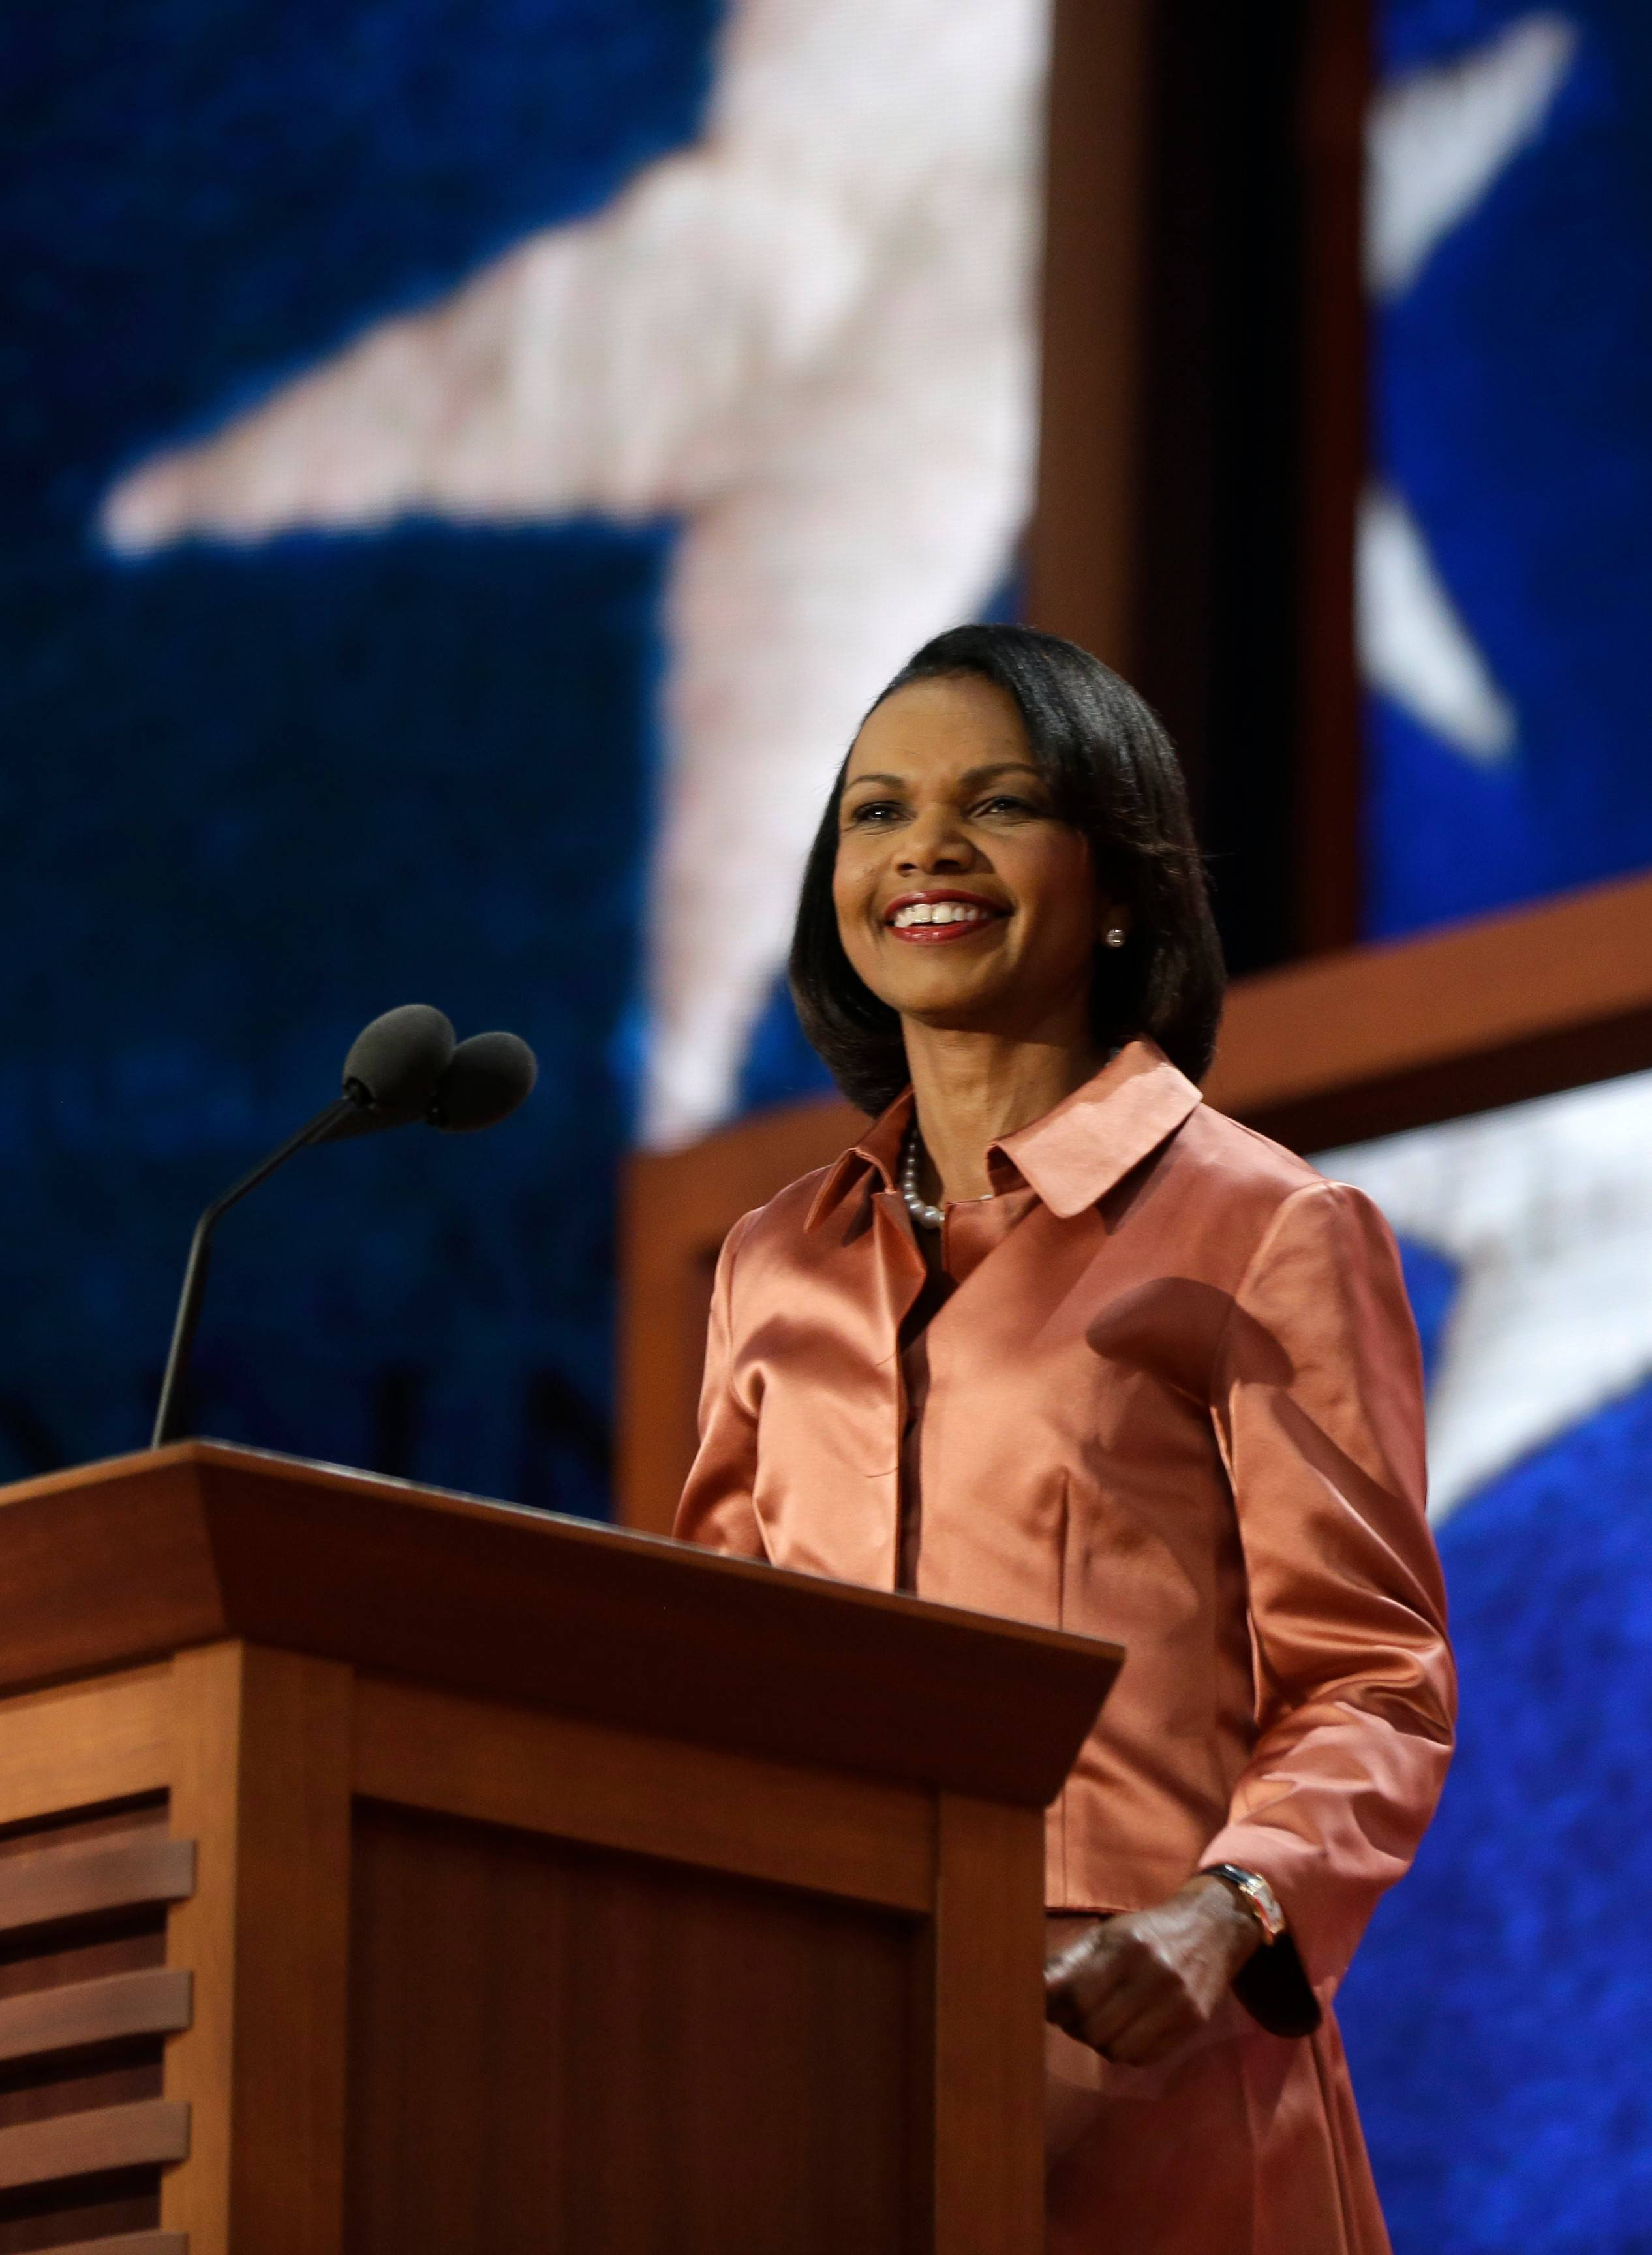 Former Secretary of State Condoleezza Rice will speak at Judson University's World Leaders Forum on March 19 in Chicago.